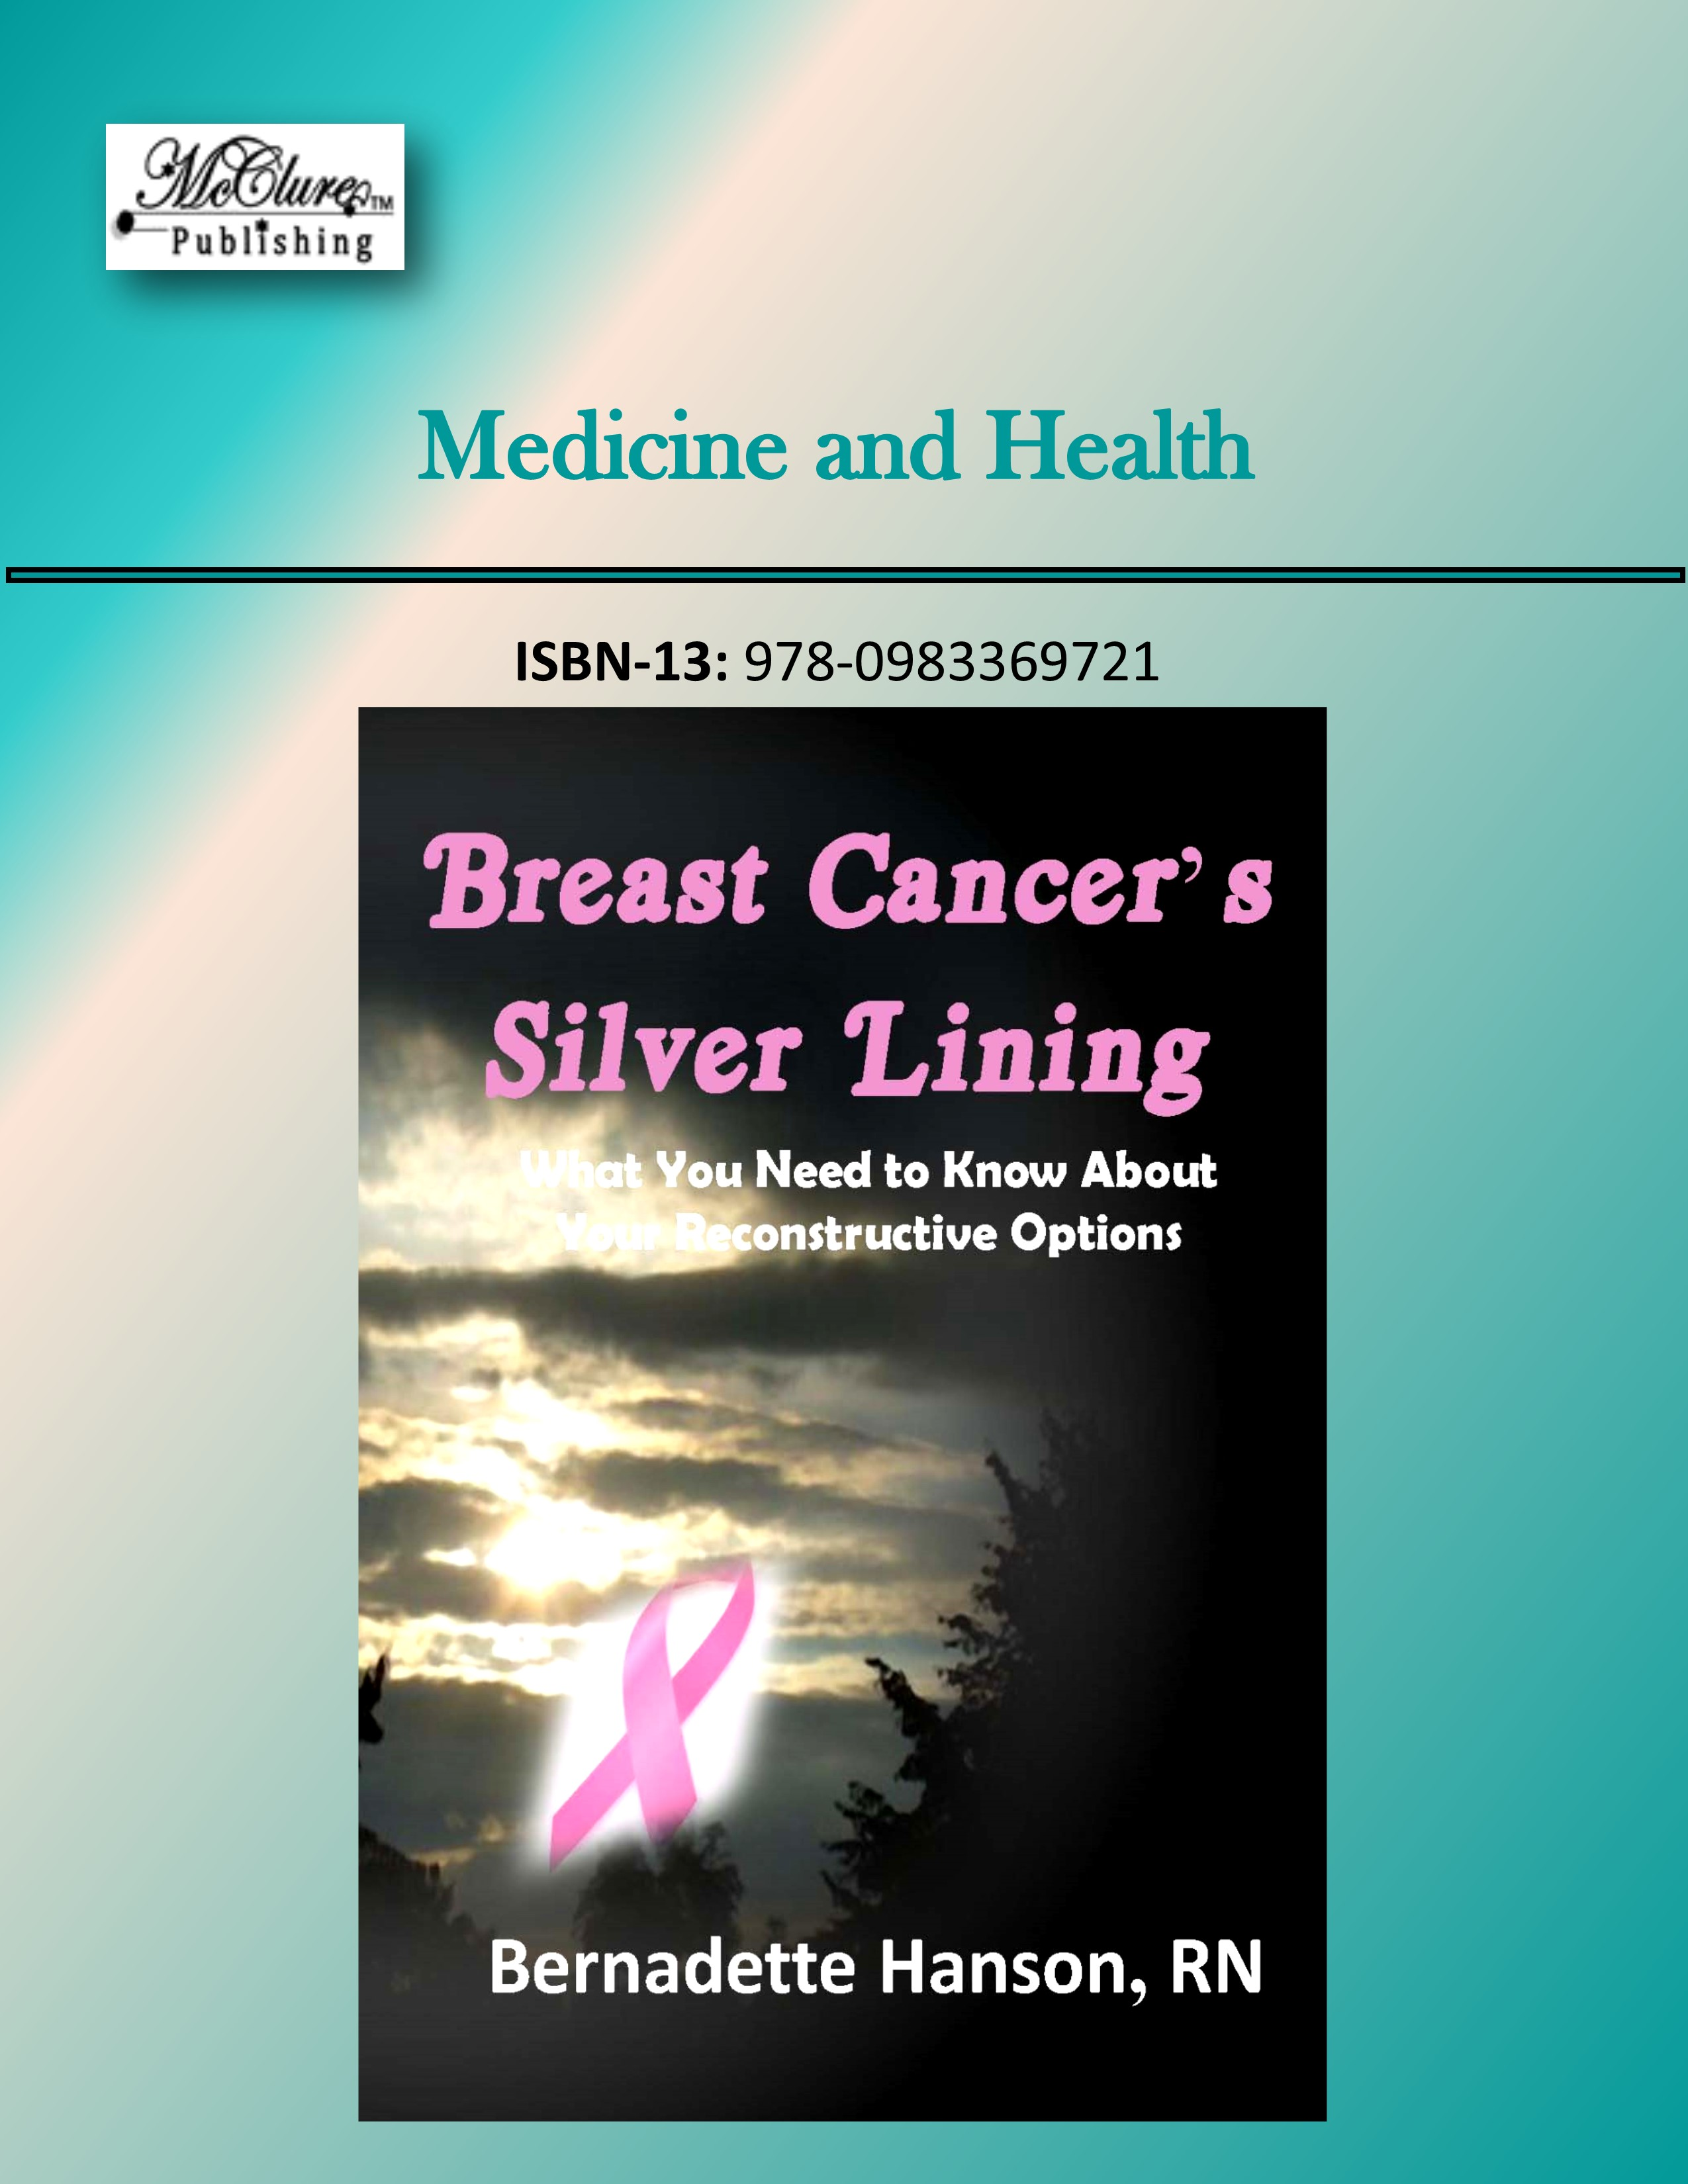 Breast Cancer Silver Lining